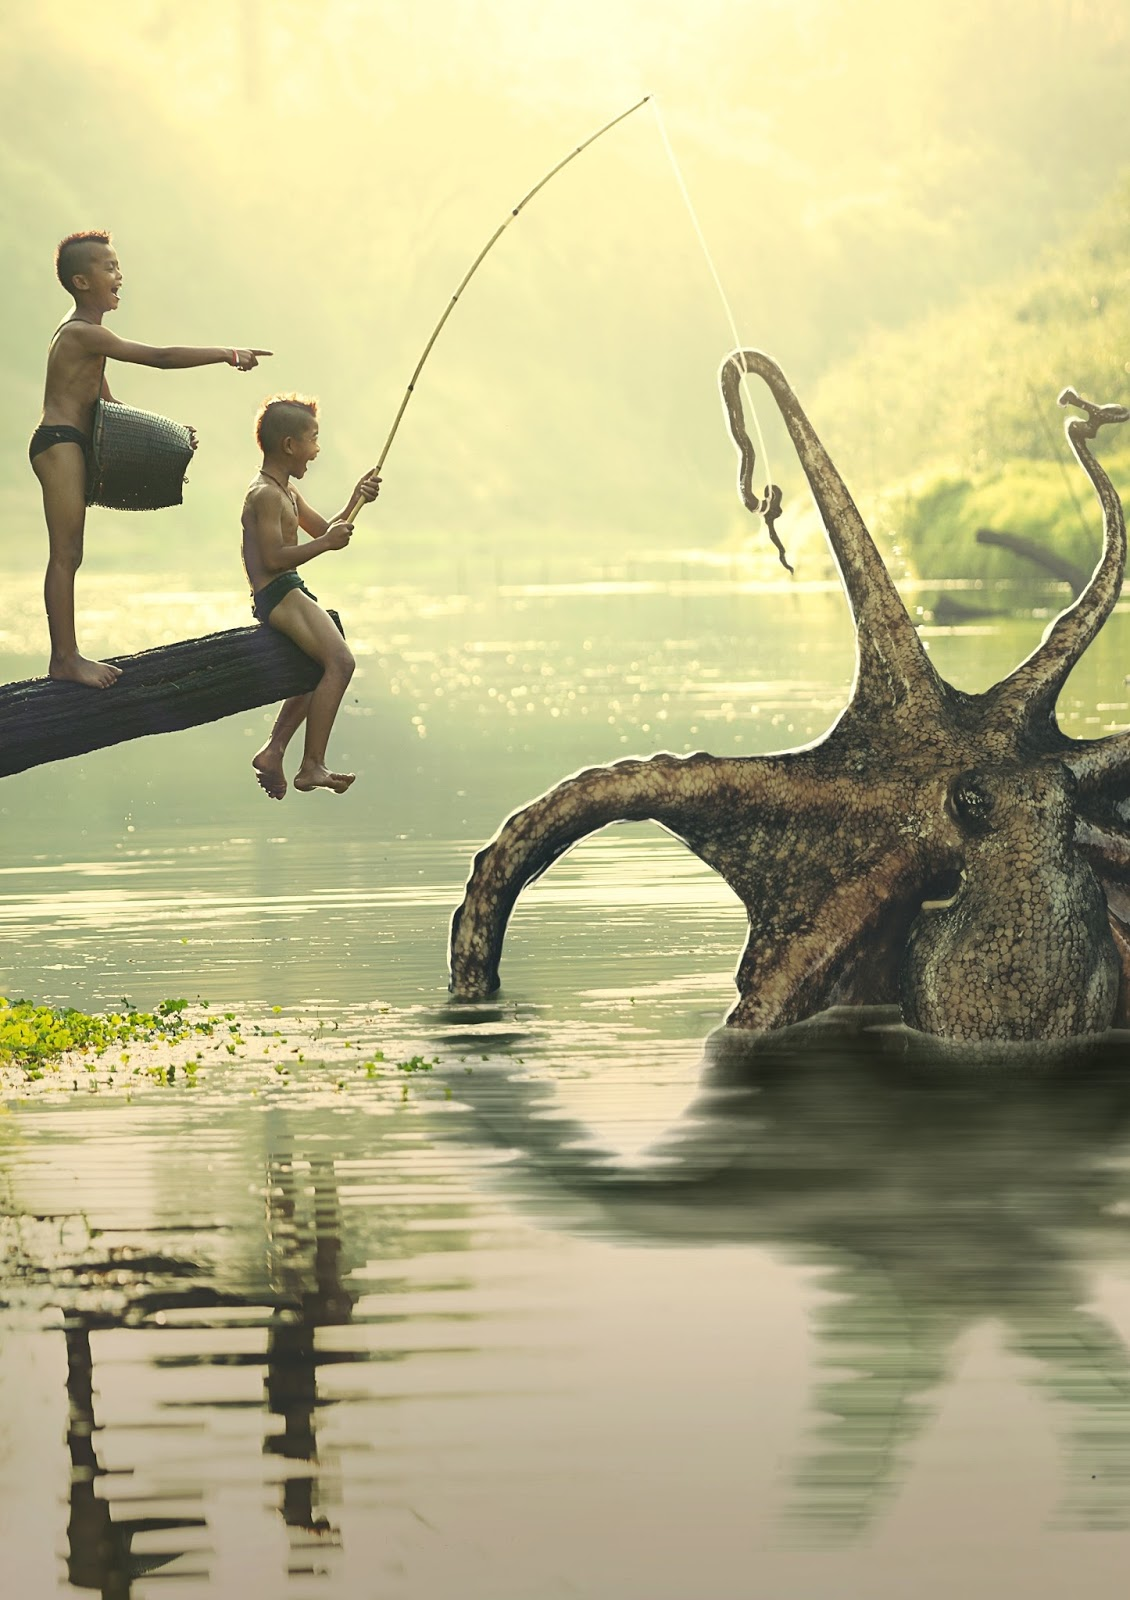 Two boys fishing a mysterious sea monster.